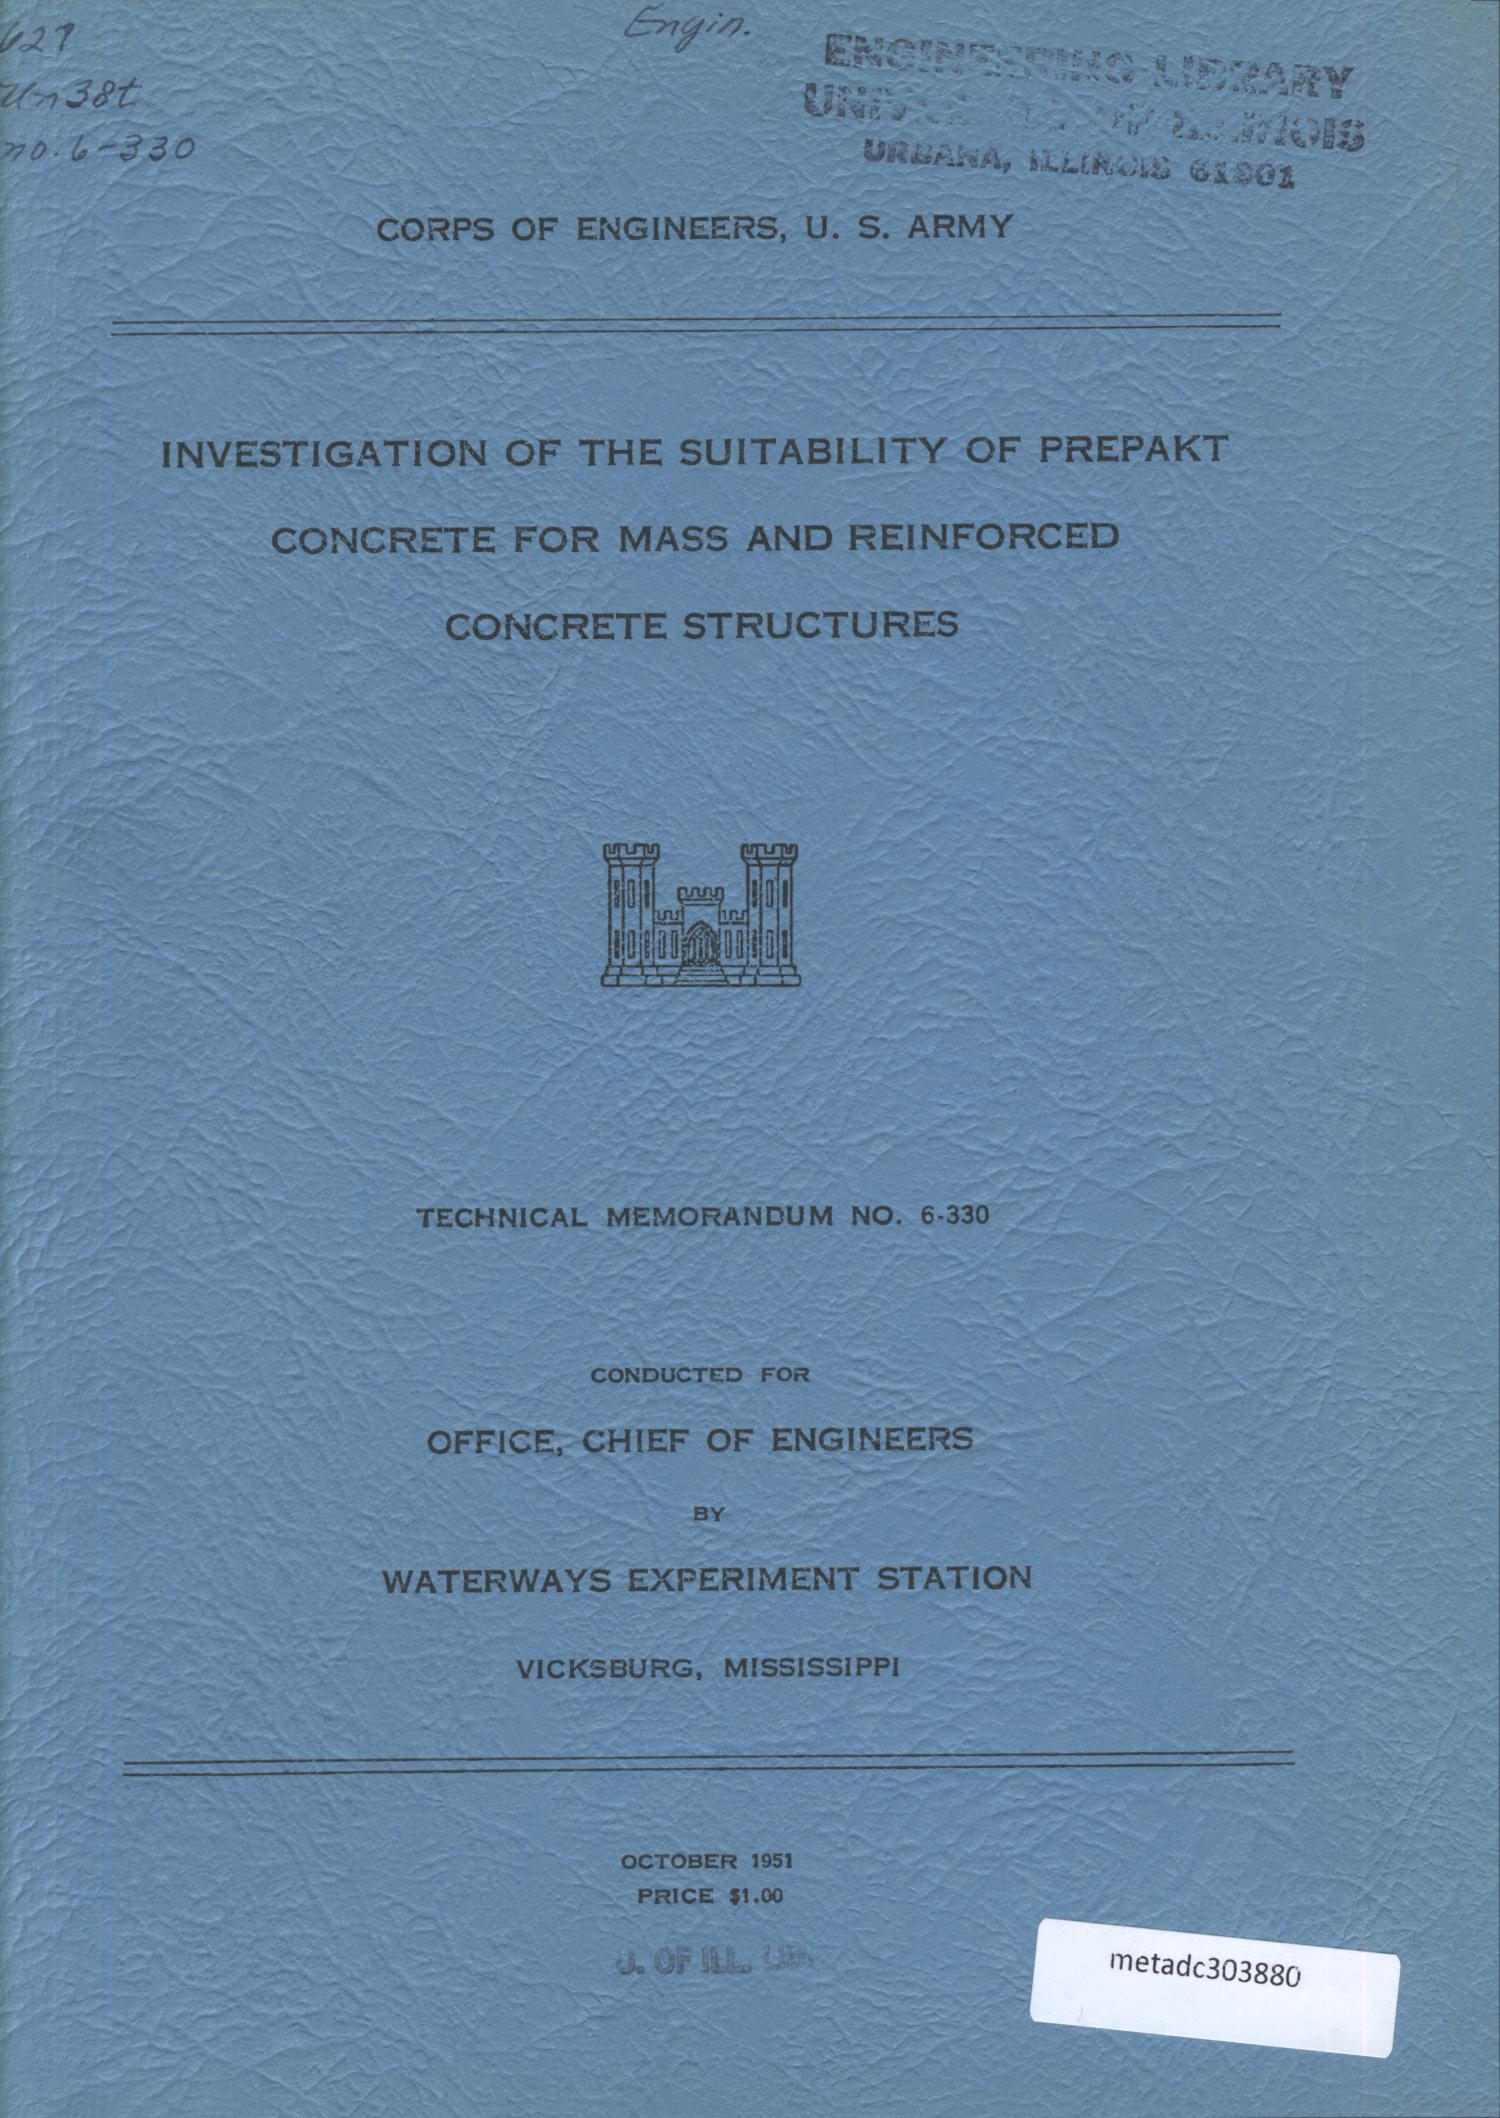 Investigation of the Suitability of Prepakt Concrete for Mass and Reinforced Concrete Structures                                                                                                      [Sequence #]: 1 of 188